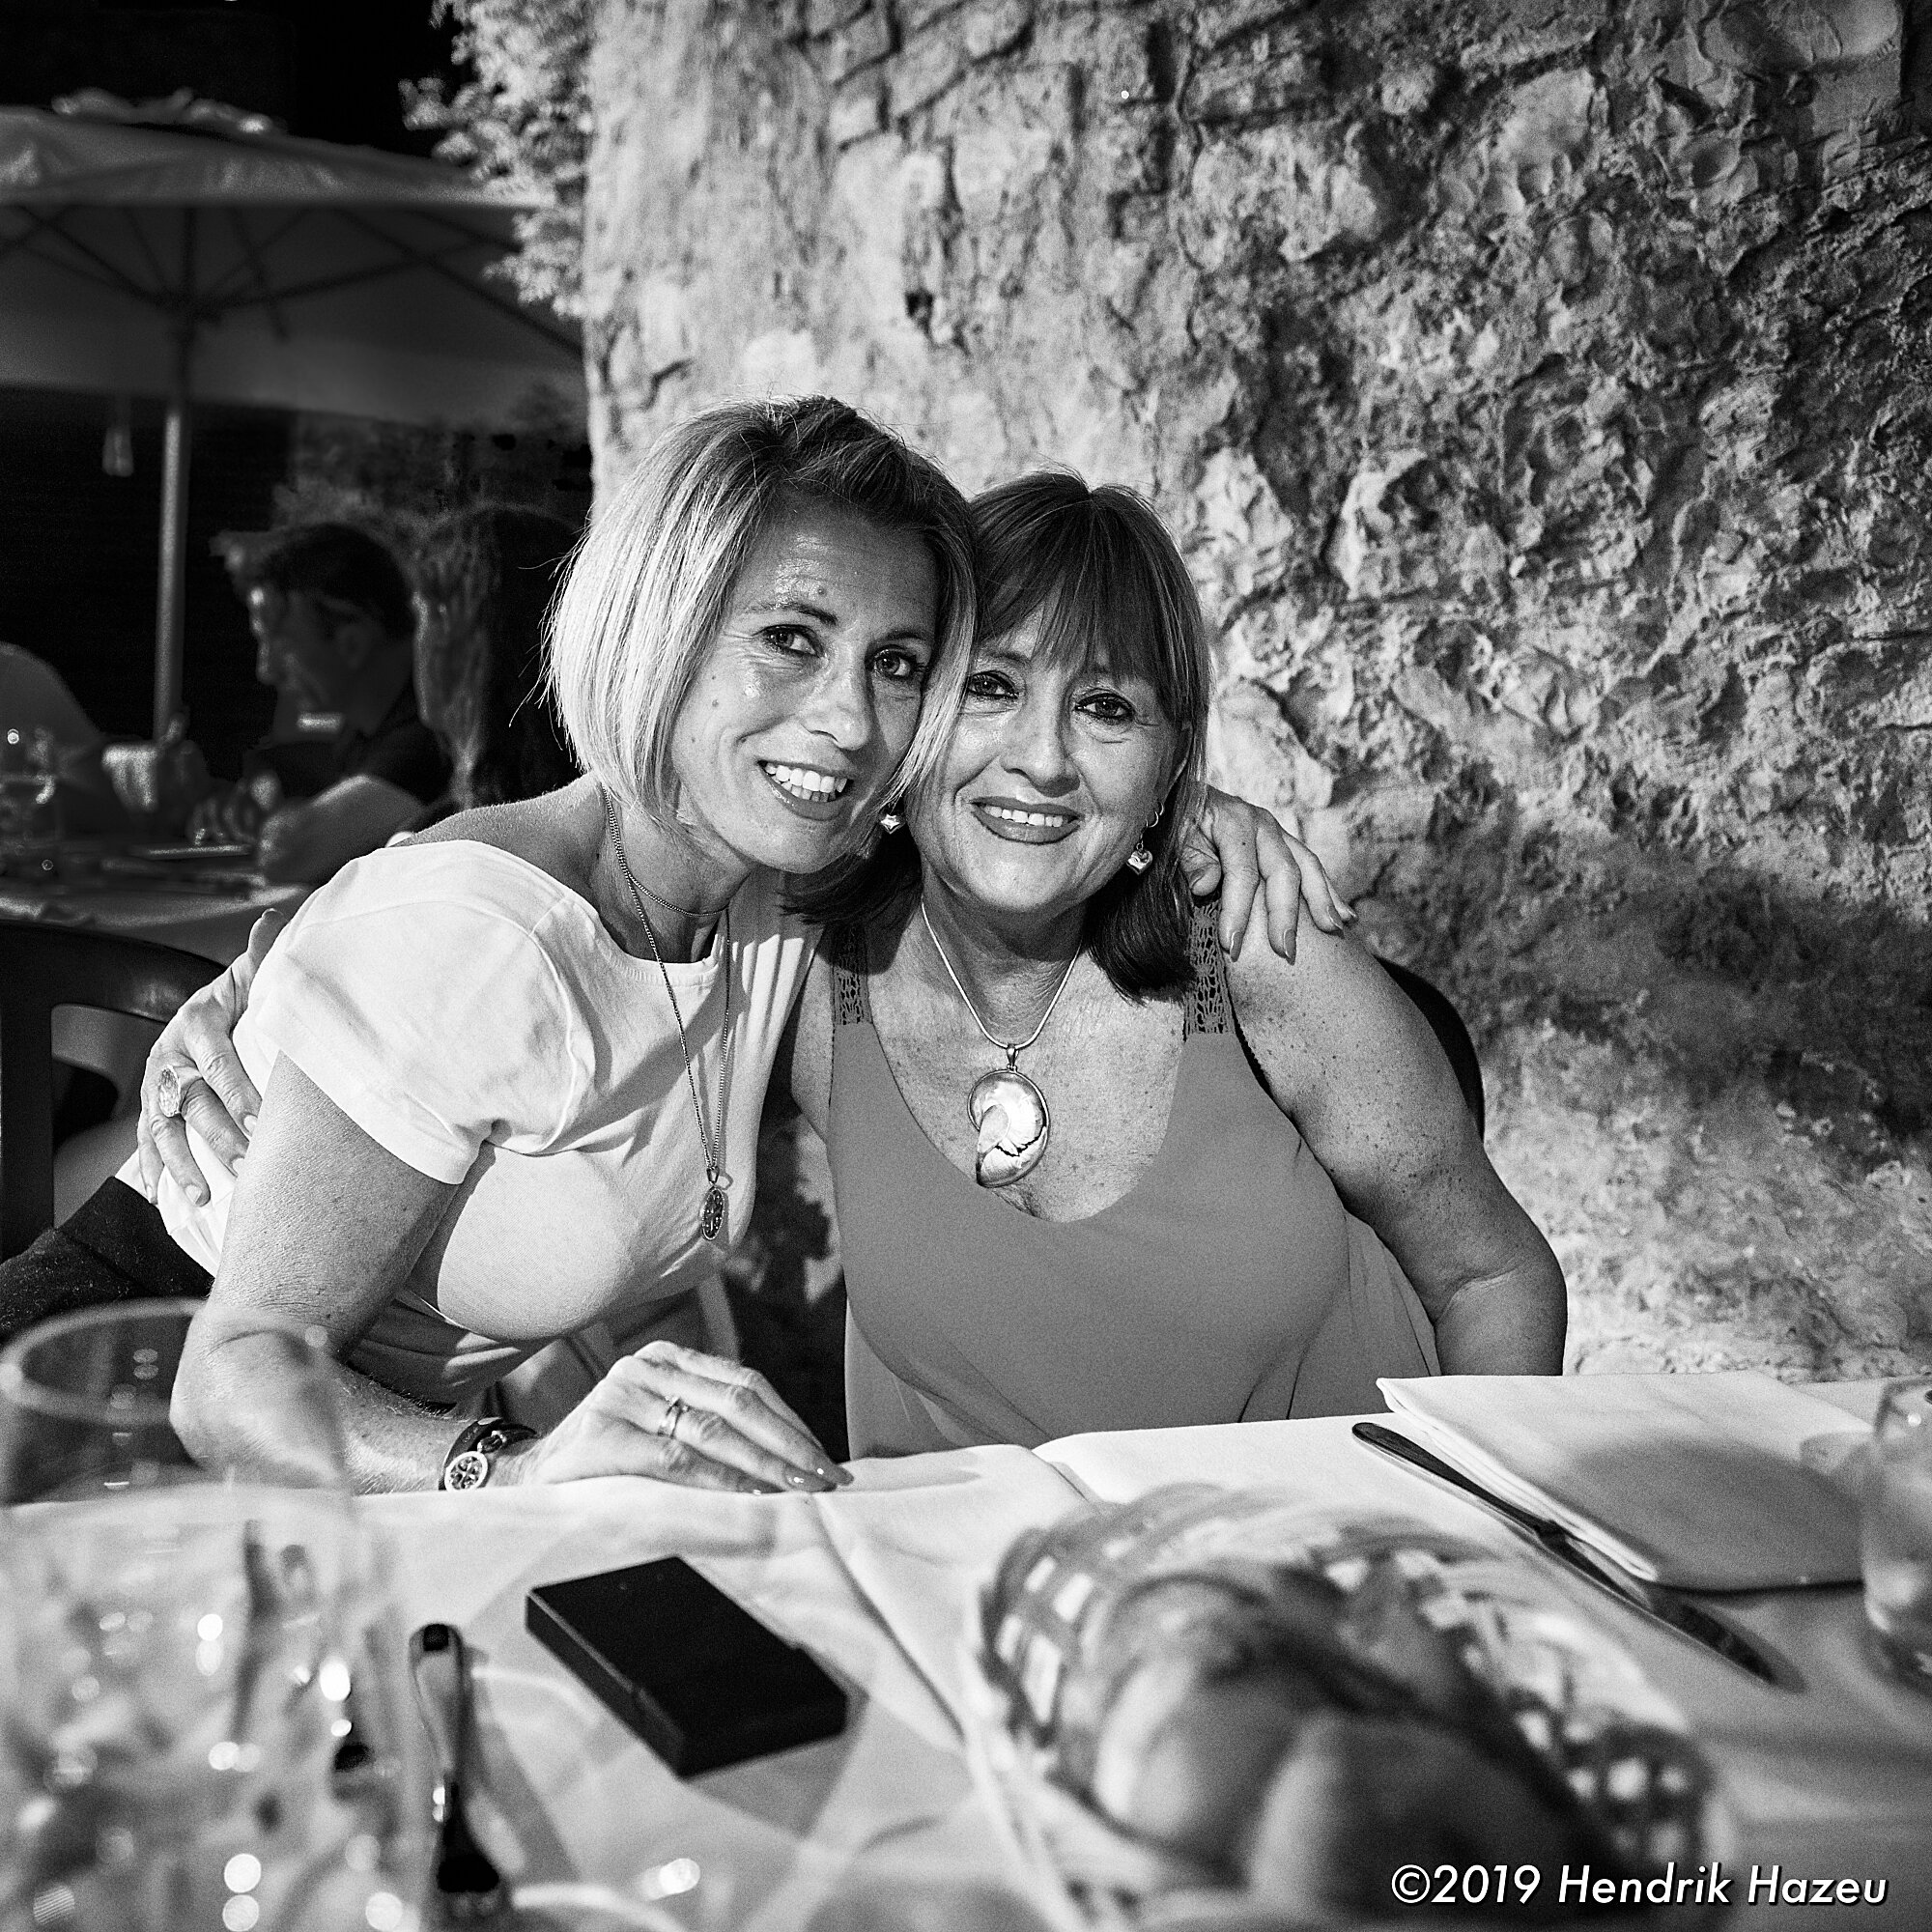 Dinner out with best friends, image taken on X-H1 with XF 16mm F/1.4 @F/2, 1/40 sec, ISO 2500, +0.7 EV